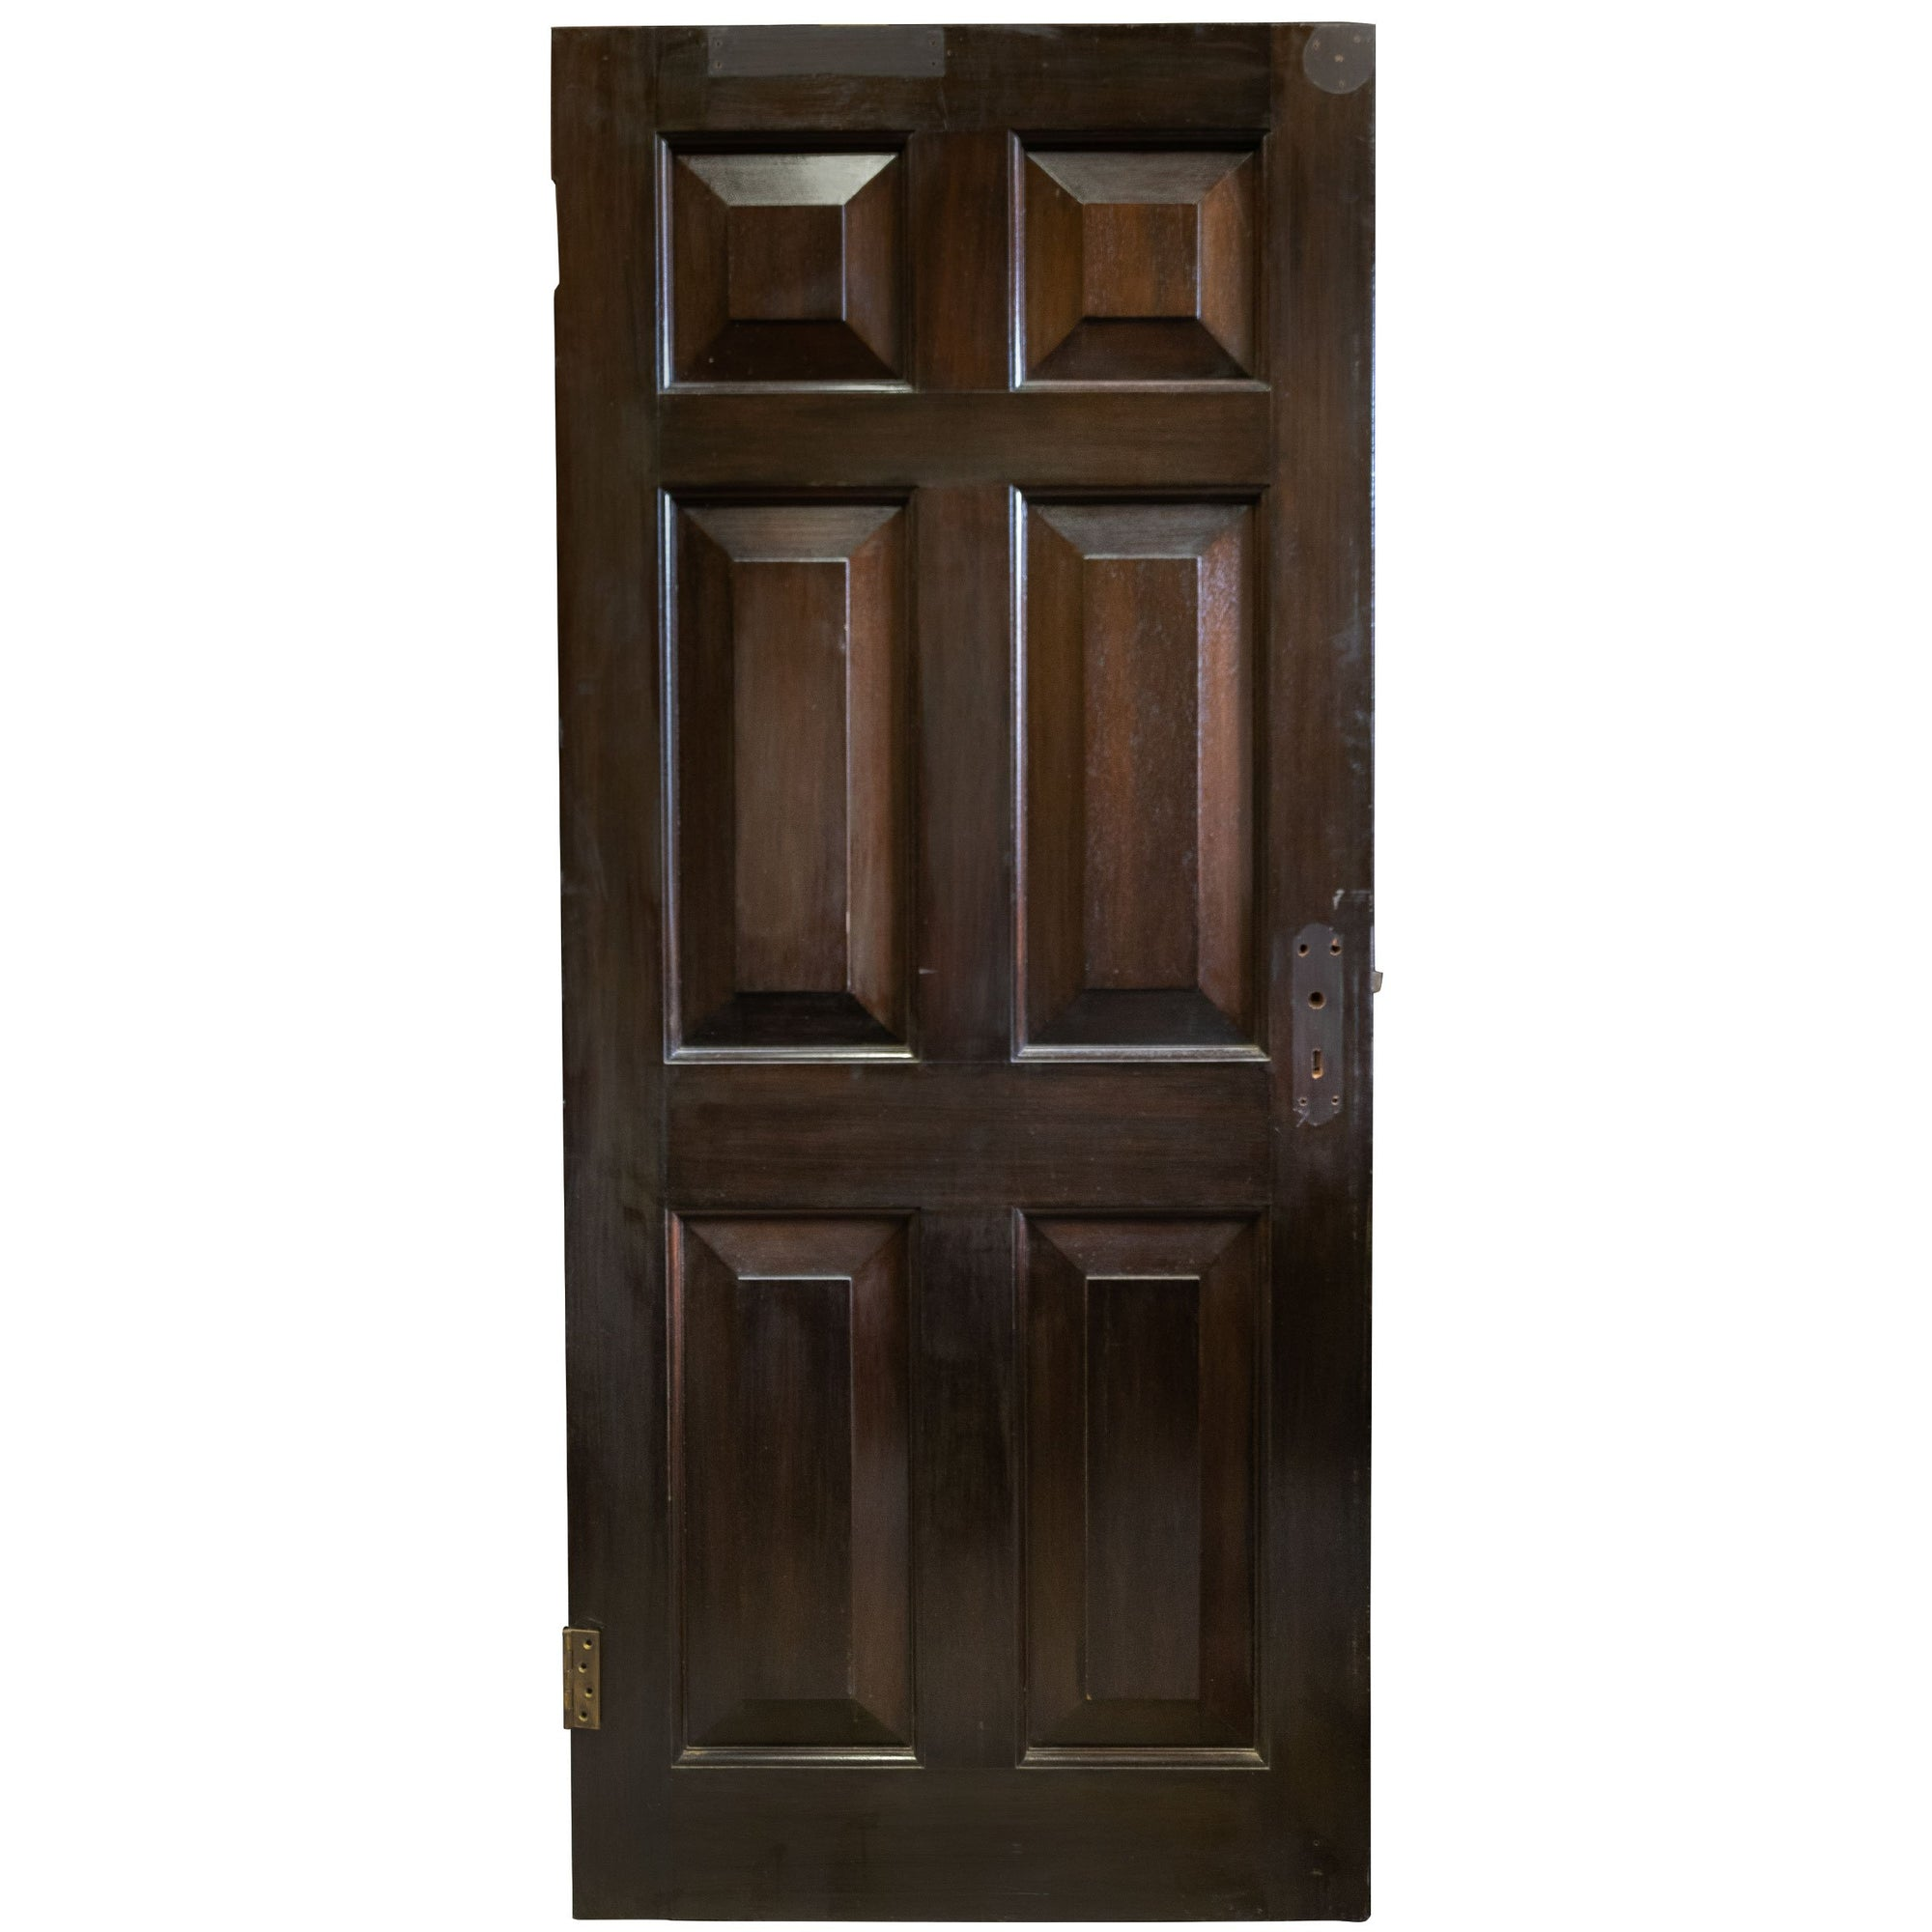 Reclaimed Solid Mahogany Six Panel Door 196 X 83.5cm (15 available)